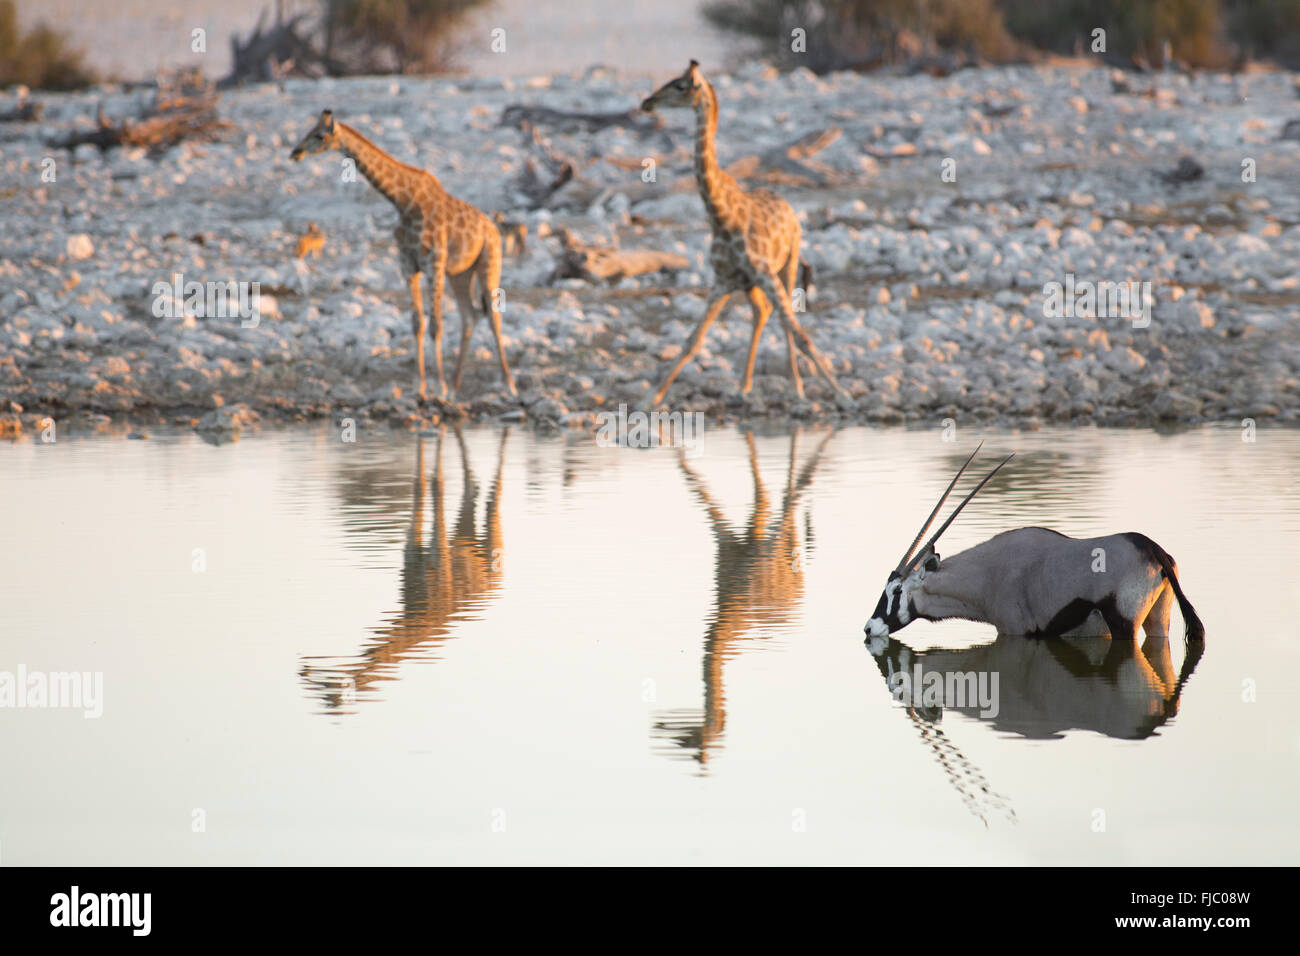 La girafe et l'Oryx à un étang Photo Stock